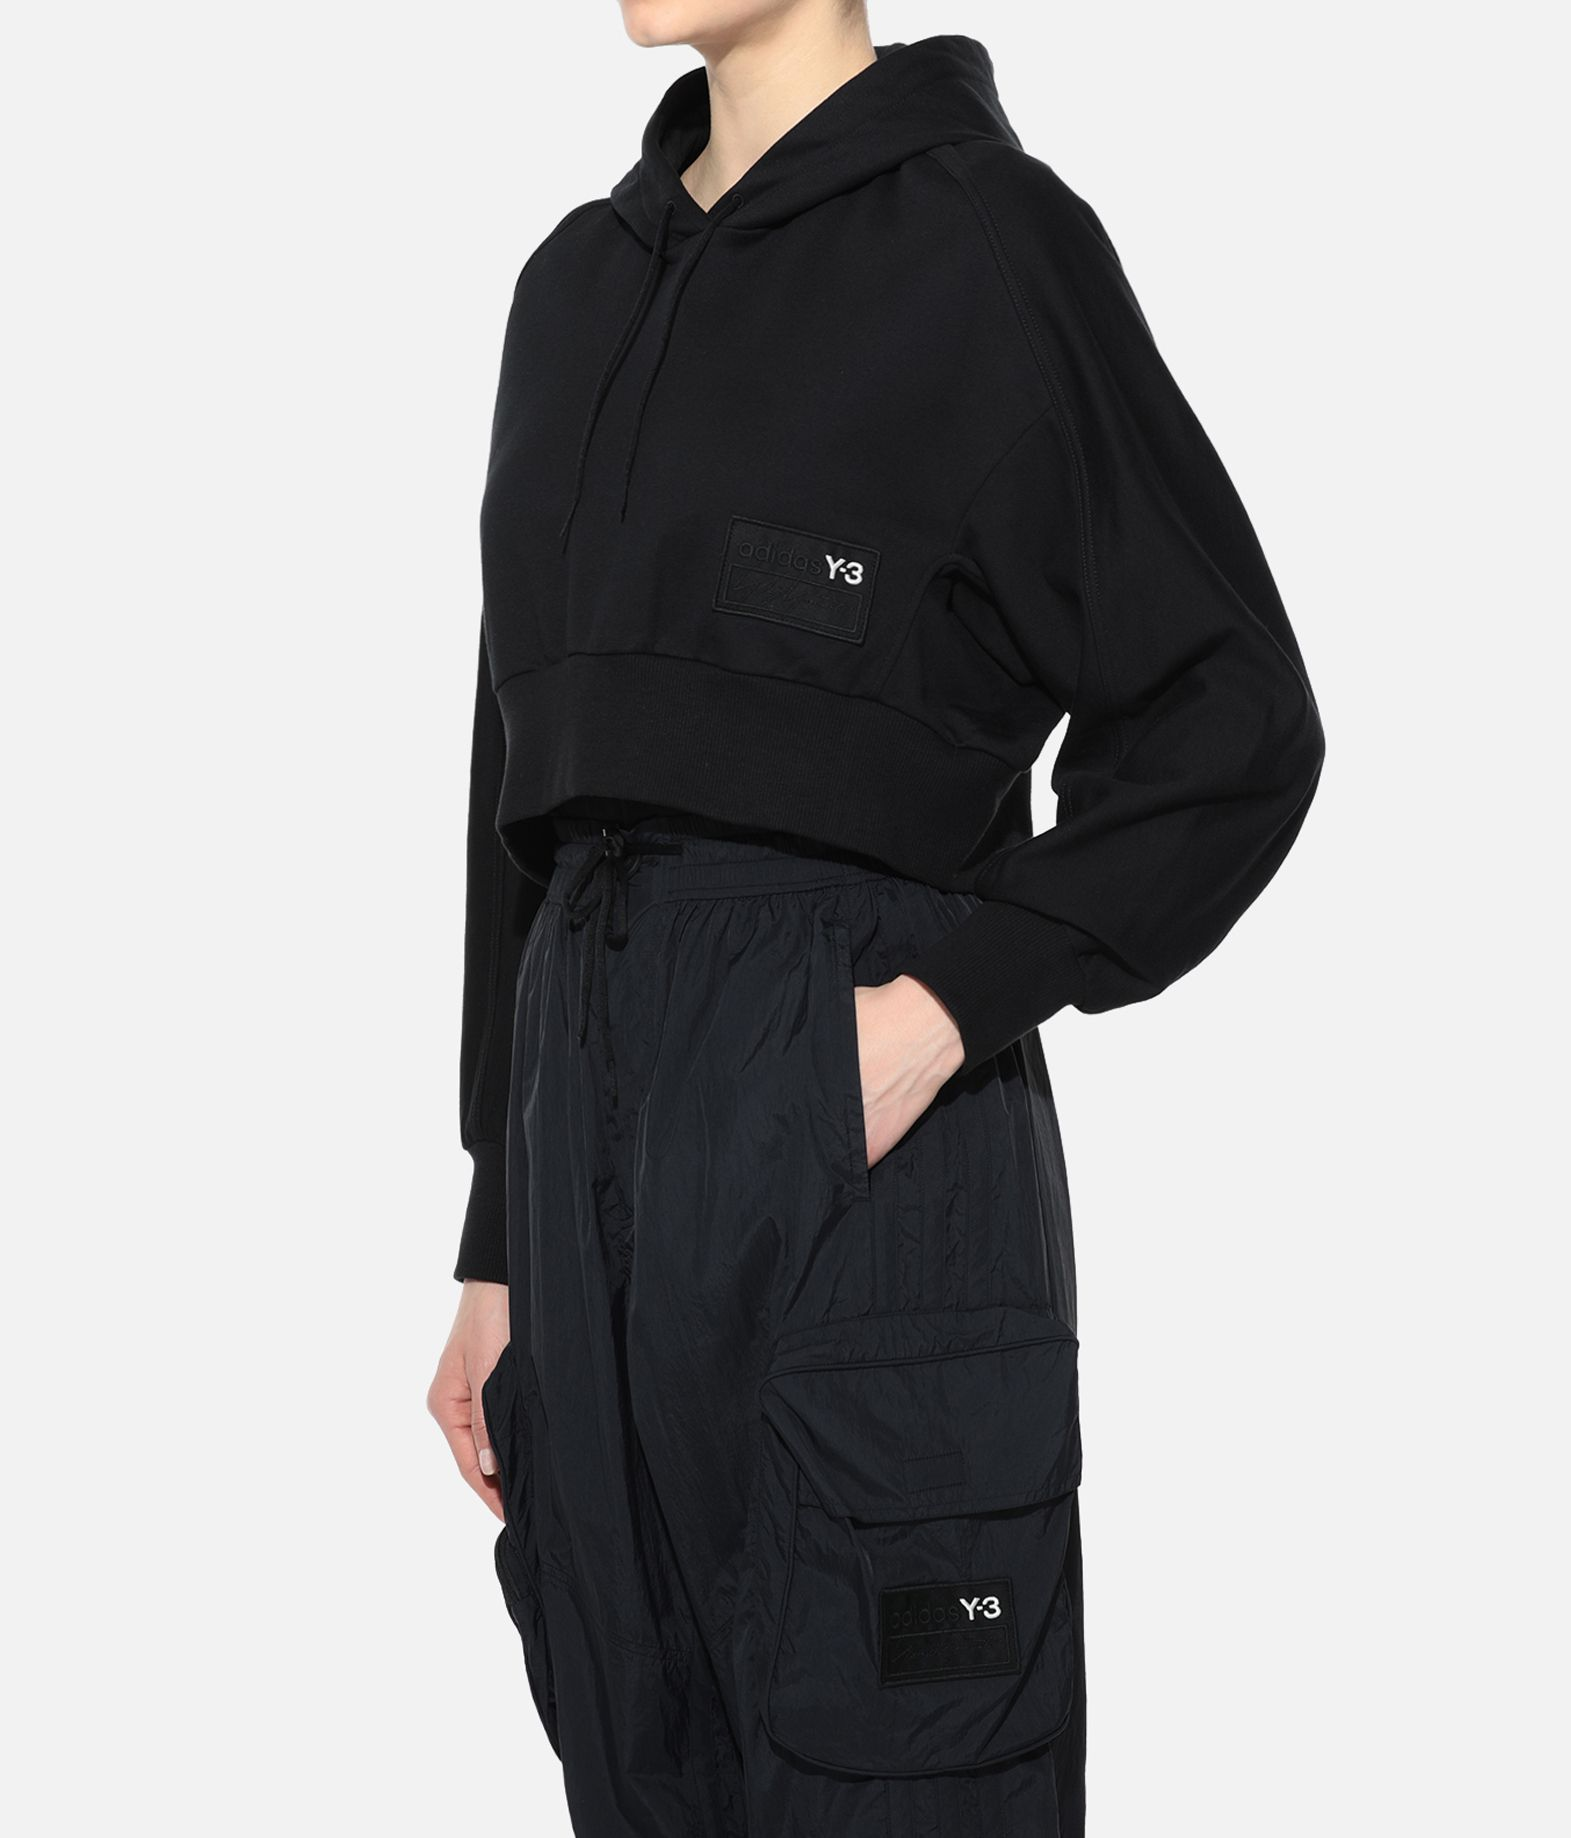 Y-3 Y-3 Stacked Badge Cropped Hoodie Hooded sweatshirt Woman e